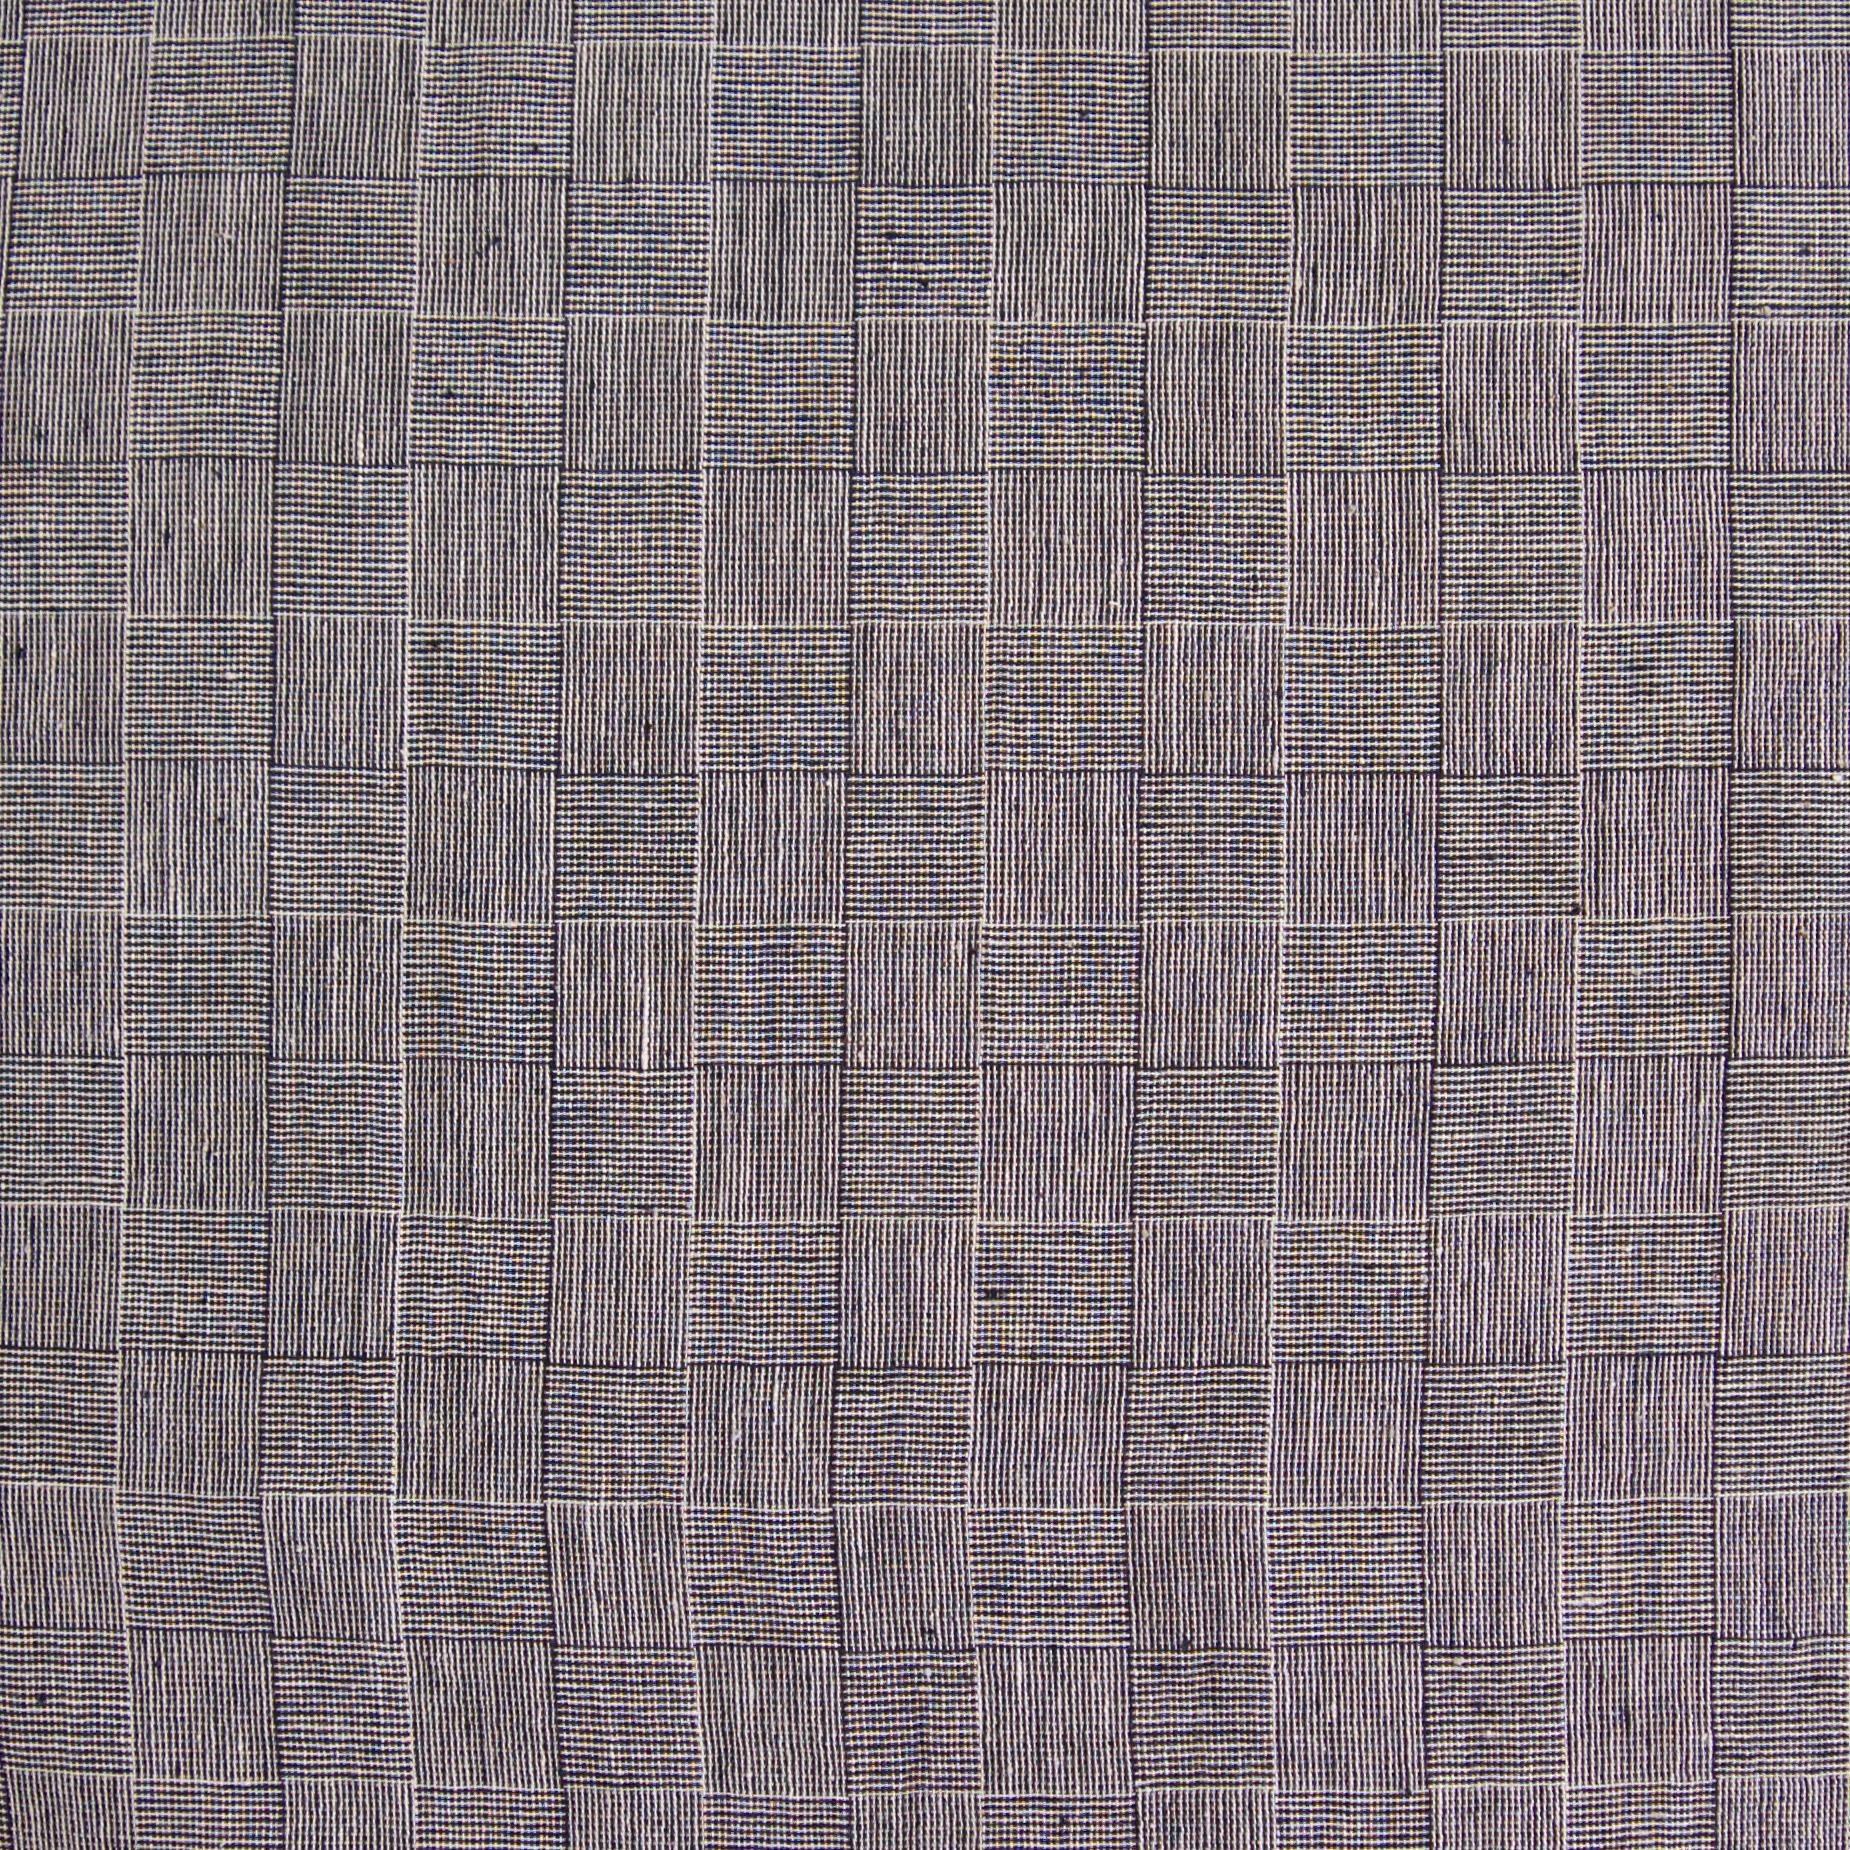 Indian Handloom-Woven Organic Kala Cotton Fabric - Plain 1 by 1 Weave - Checkers Design - Black Reactive Thread Dye - Flat